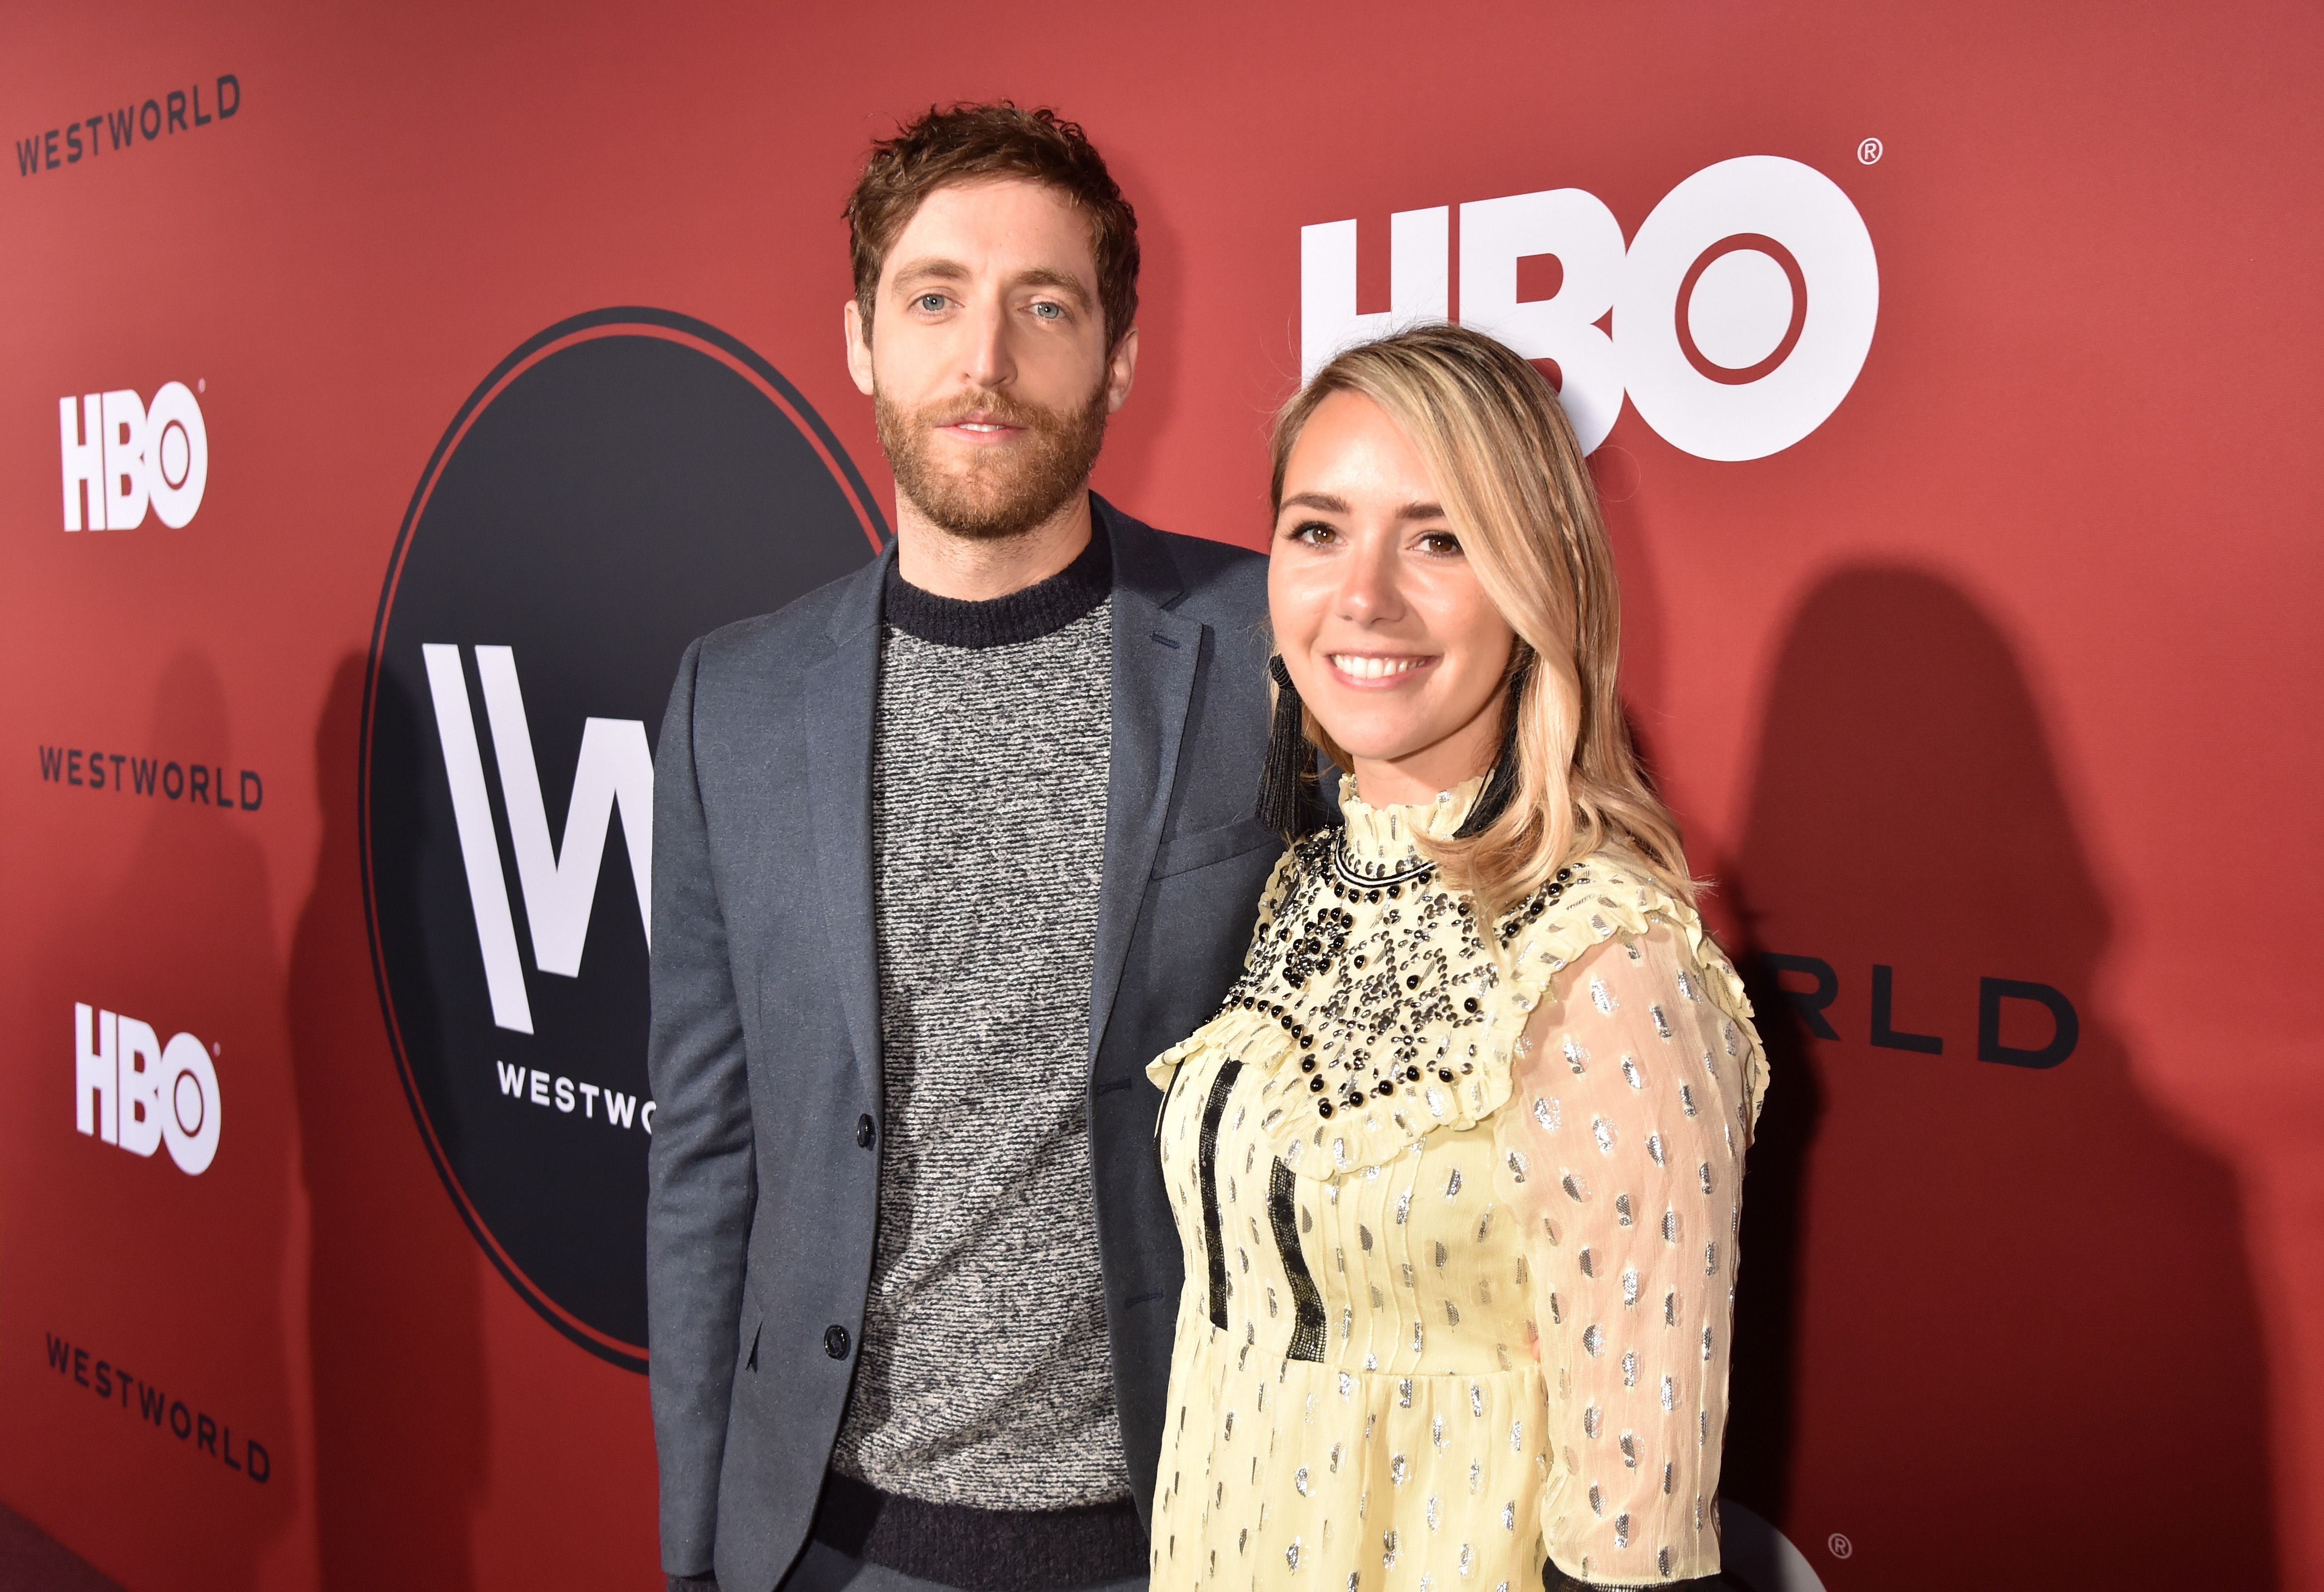 Thomas Middleditch Talks About Going to Sex Parties With His Wife